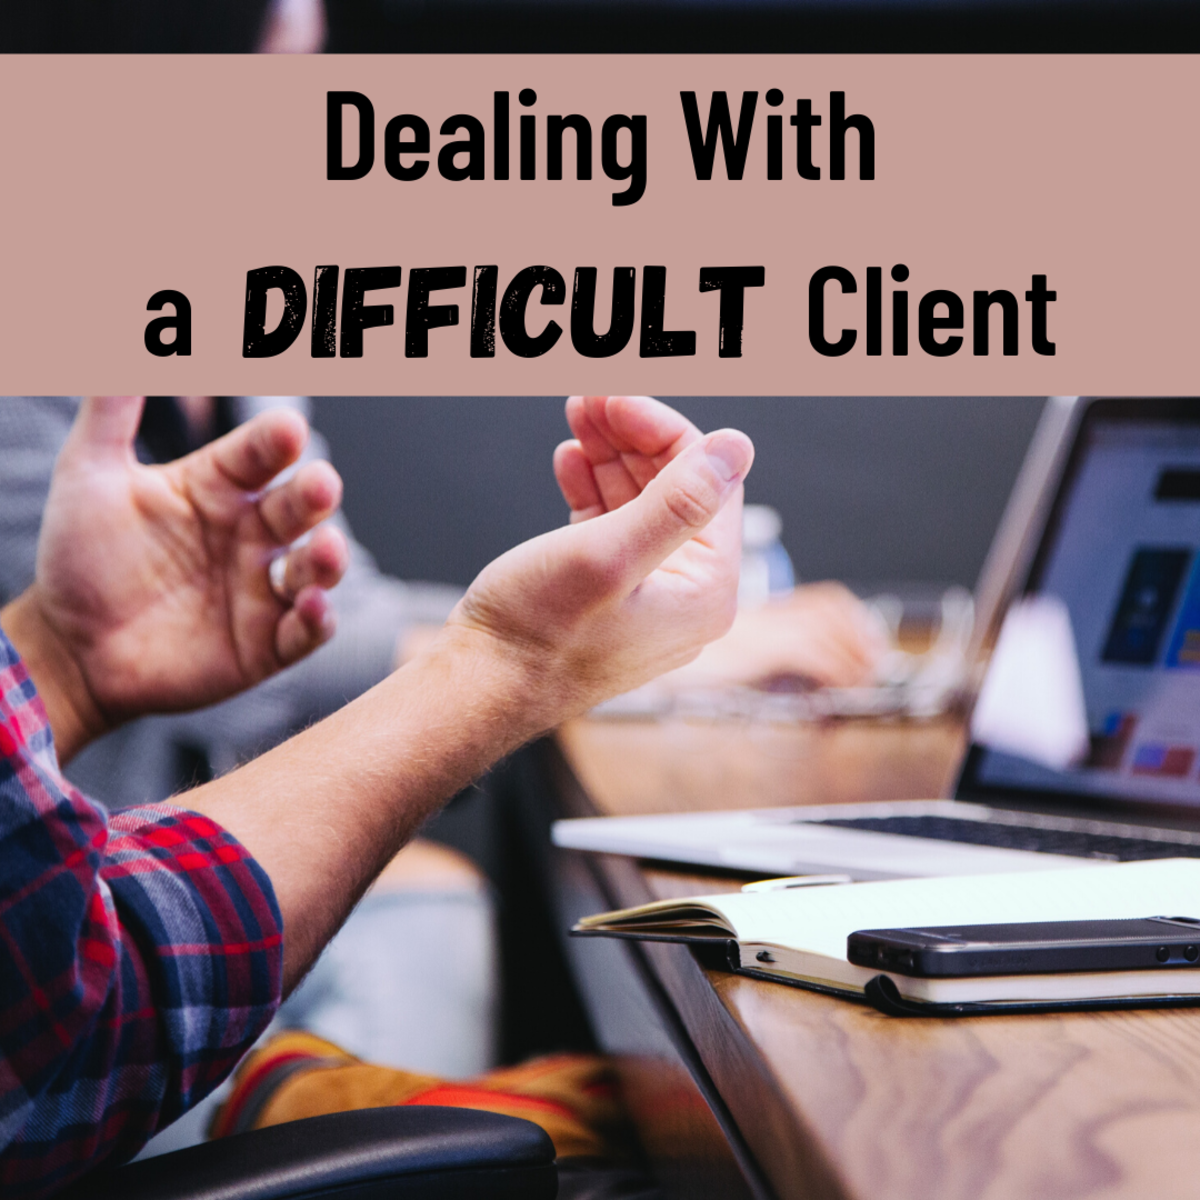 How Do You Really Deal With a Difficult Client?